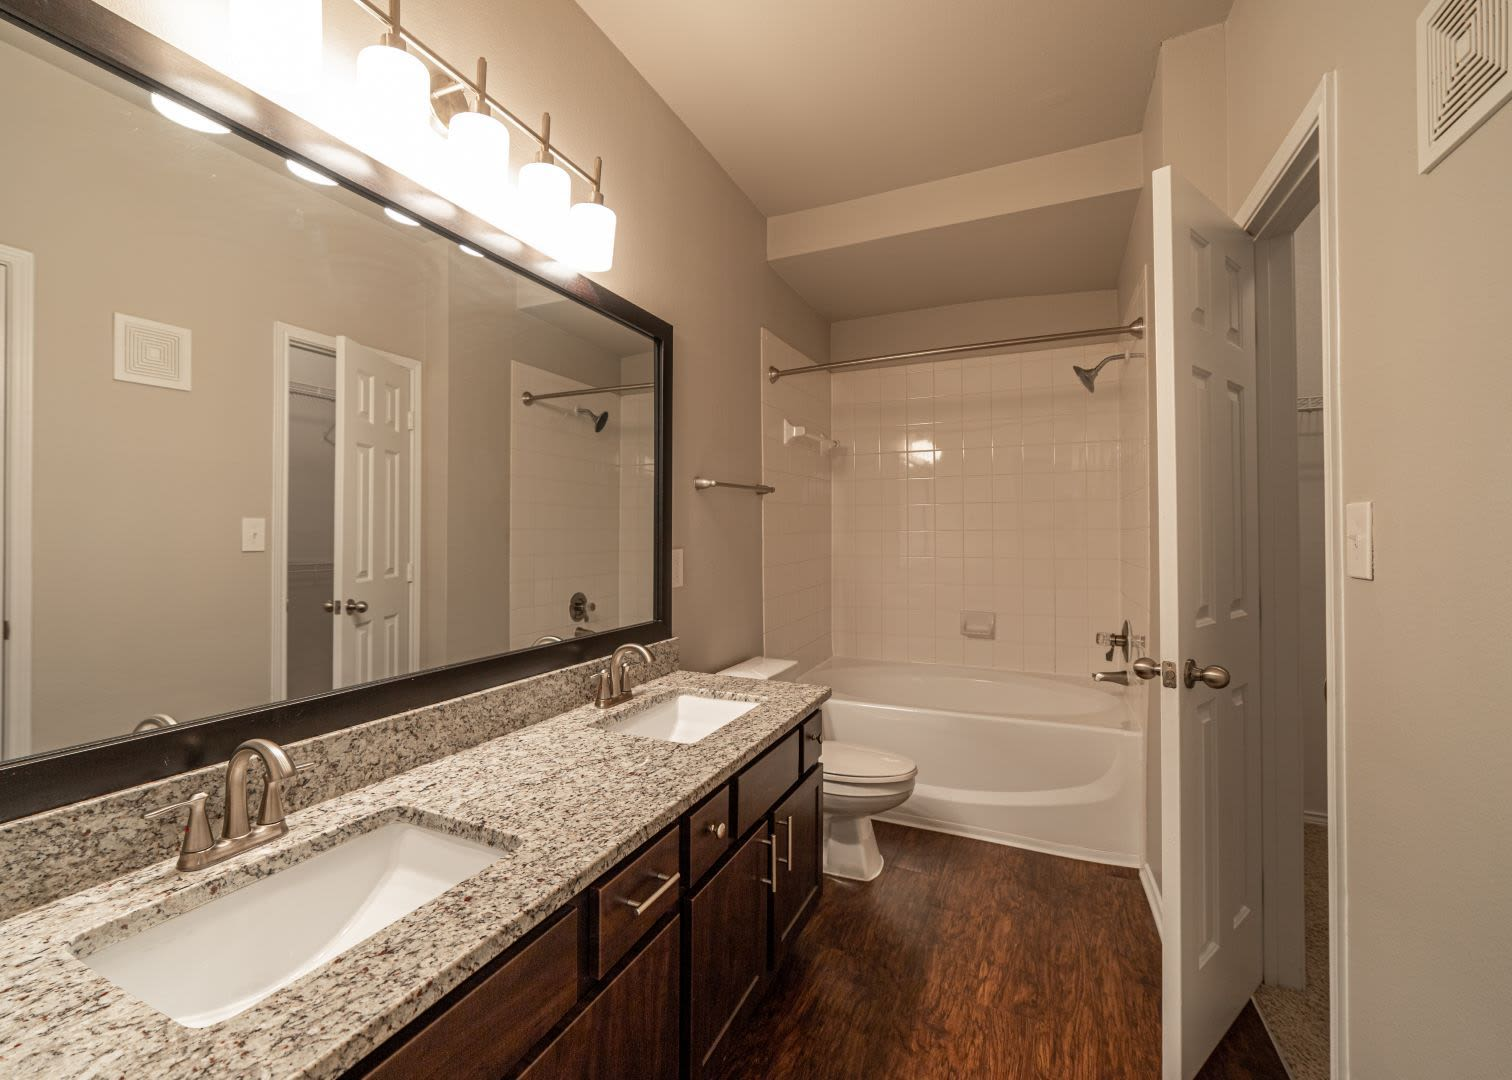 Bathroom with double sinks at Marquis at Stonebriar in Frisco, Texas